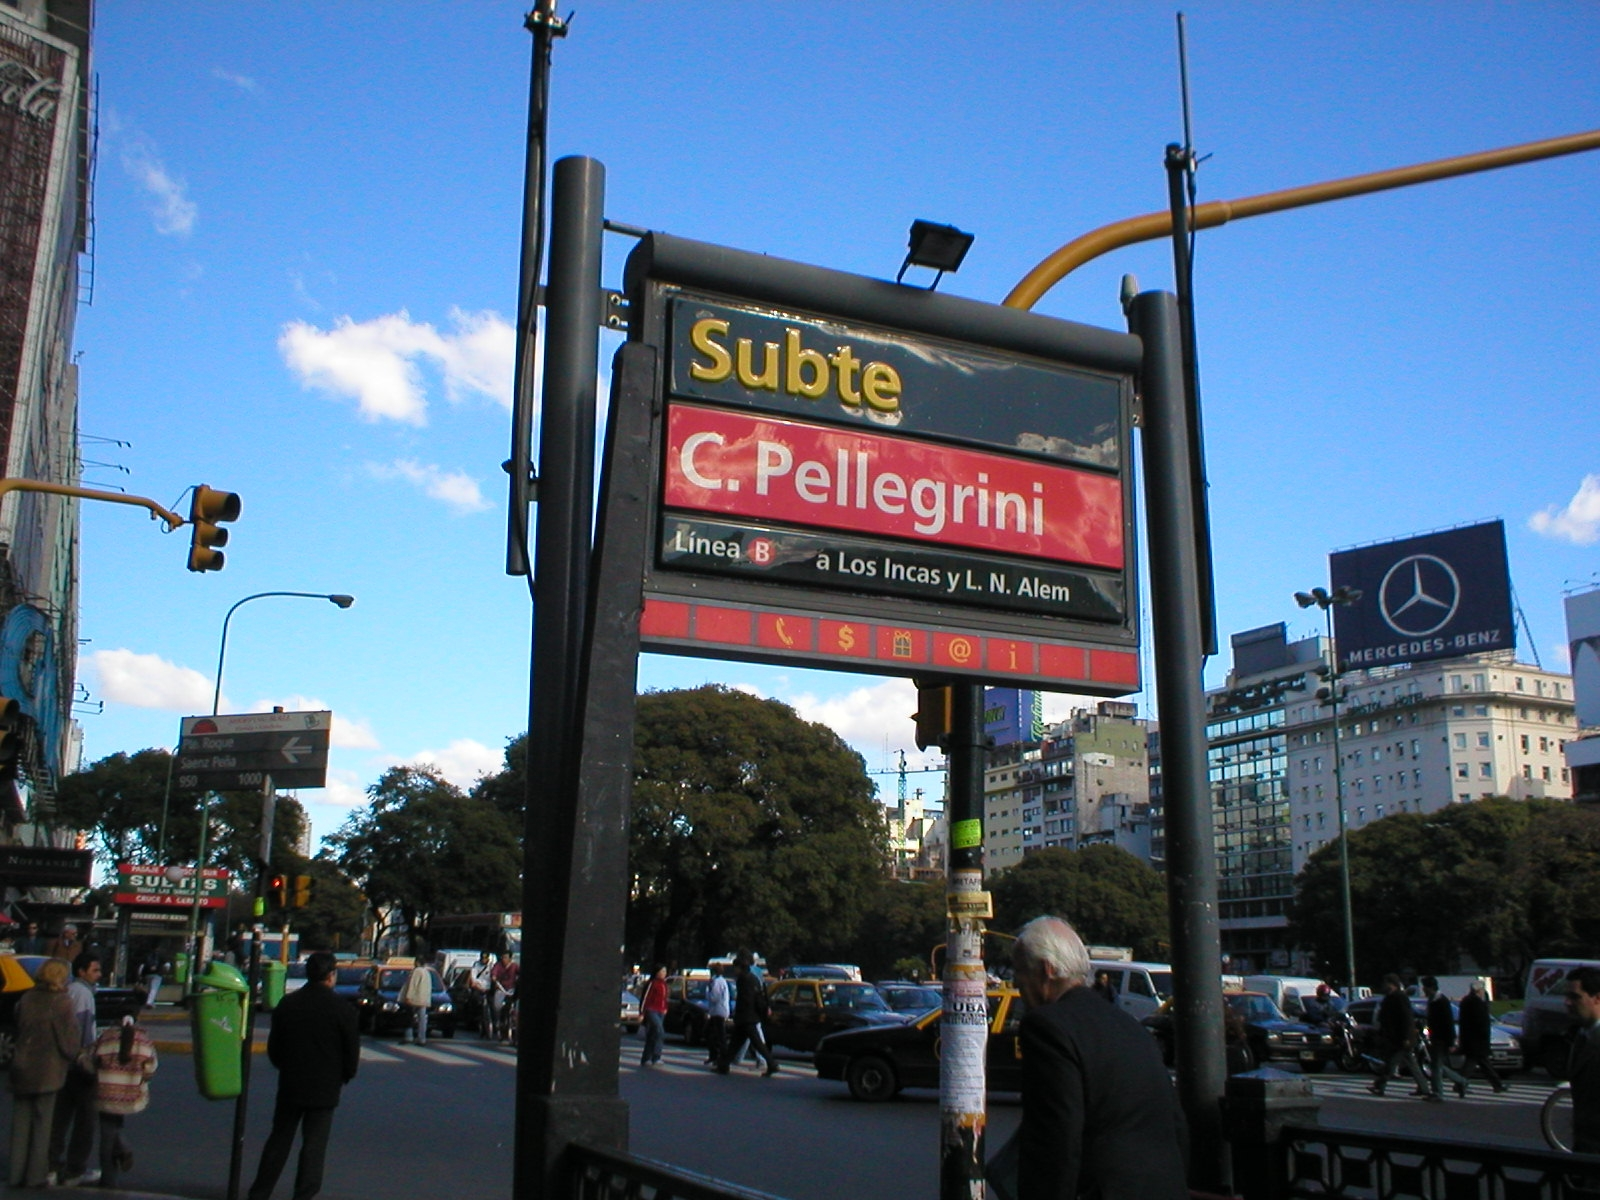 File:Buenos Aires Subte station cpellegrini.JPG - Wikimedia Commons